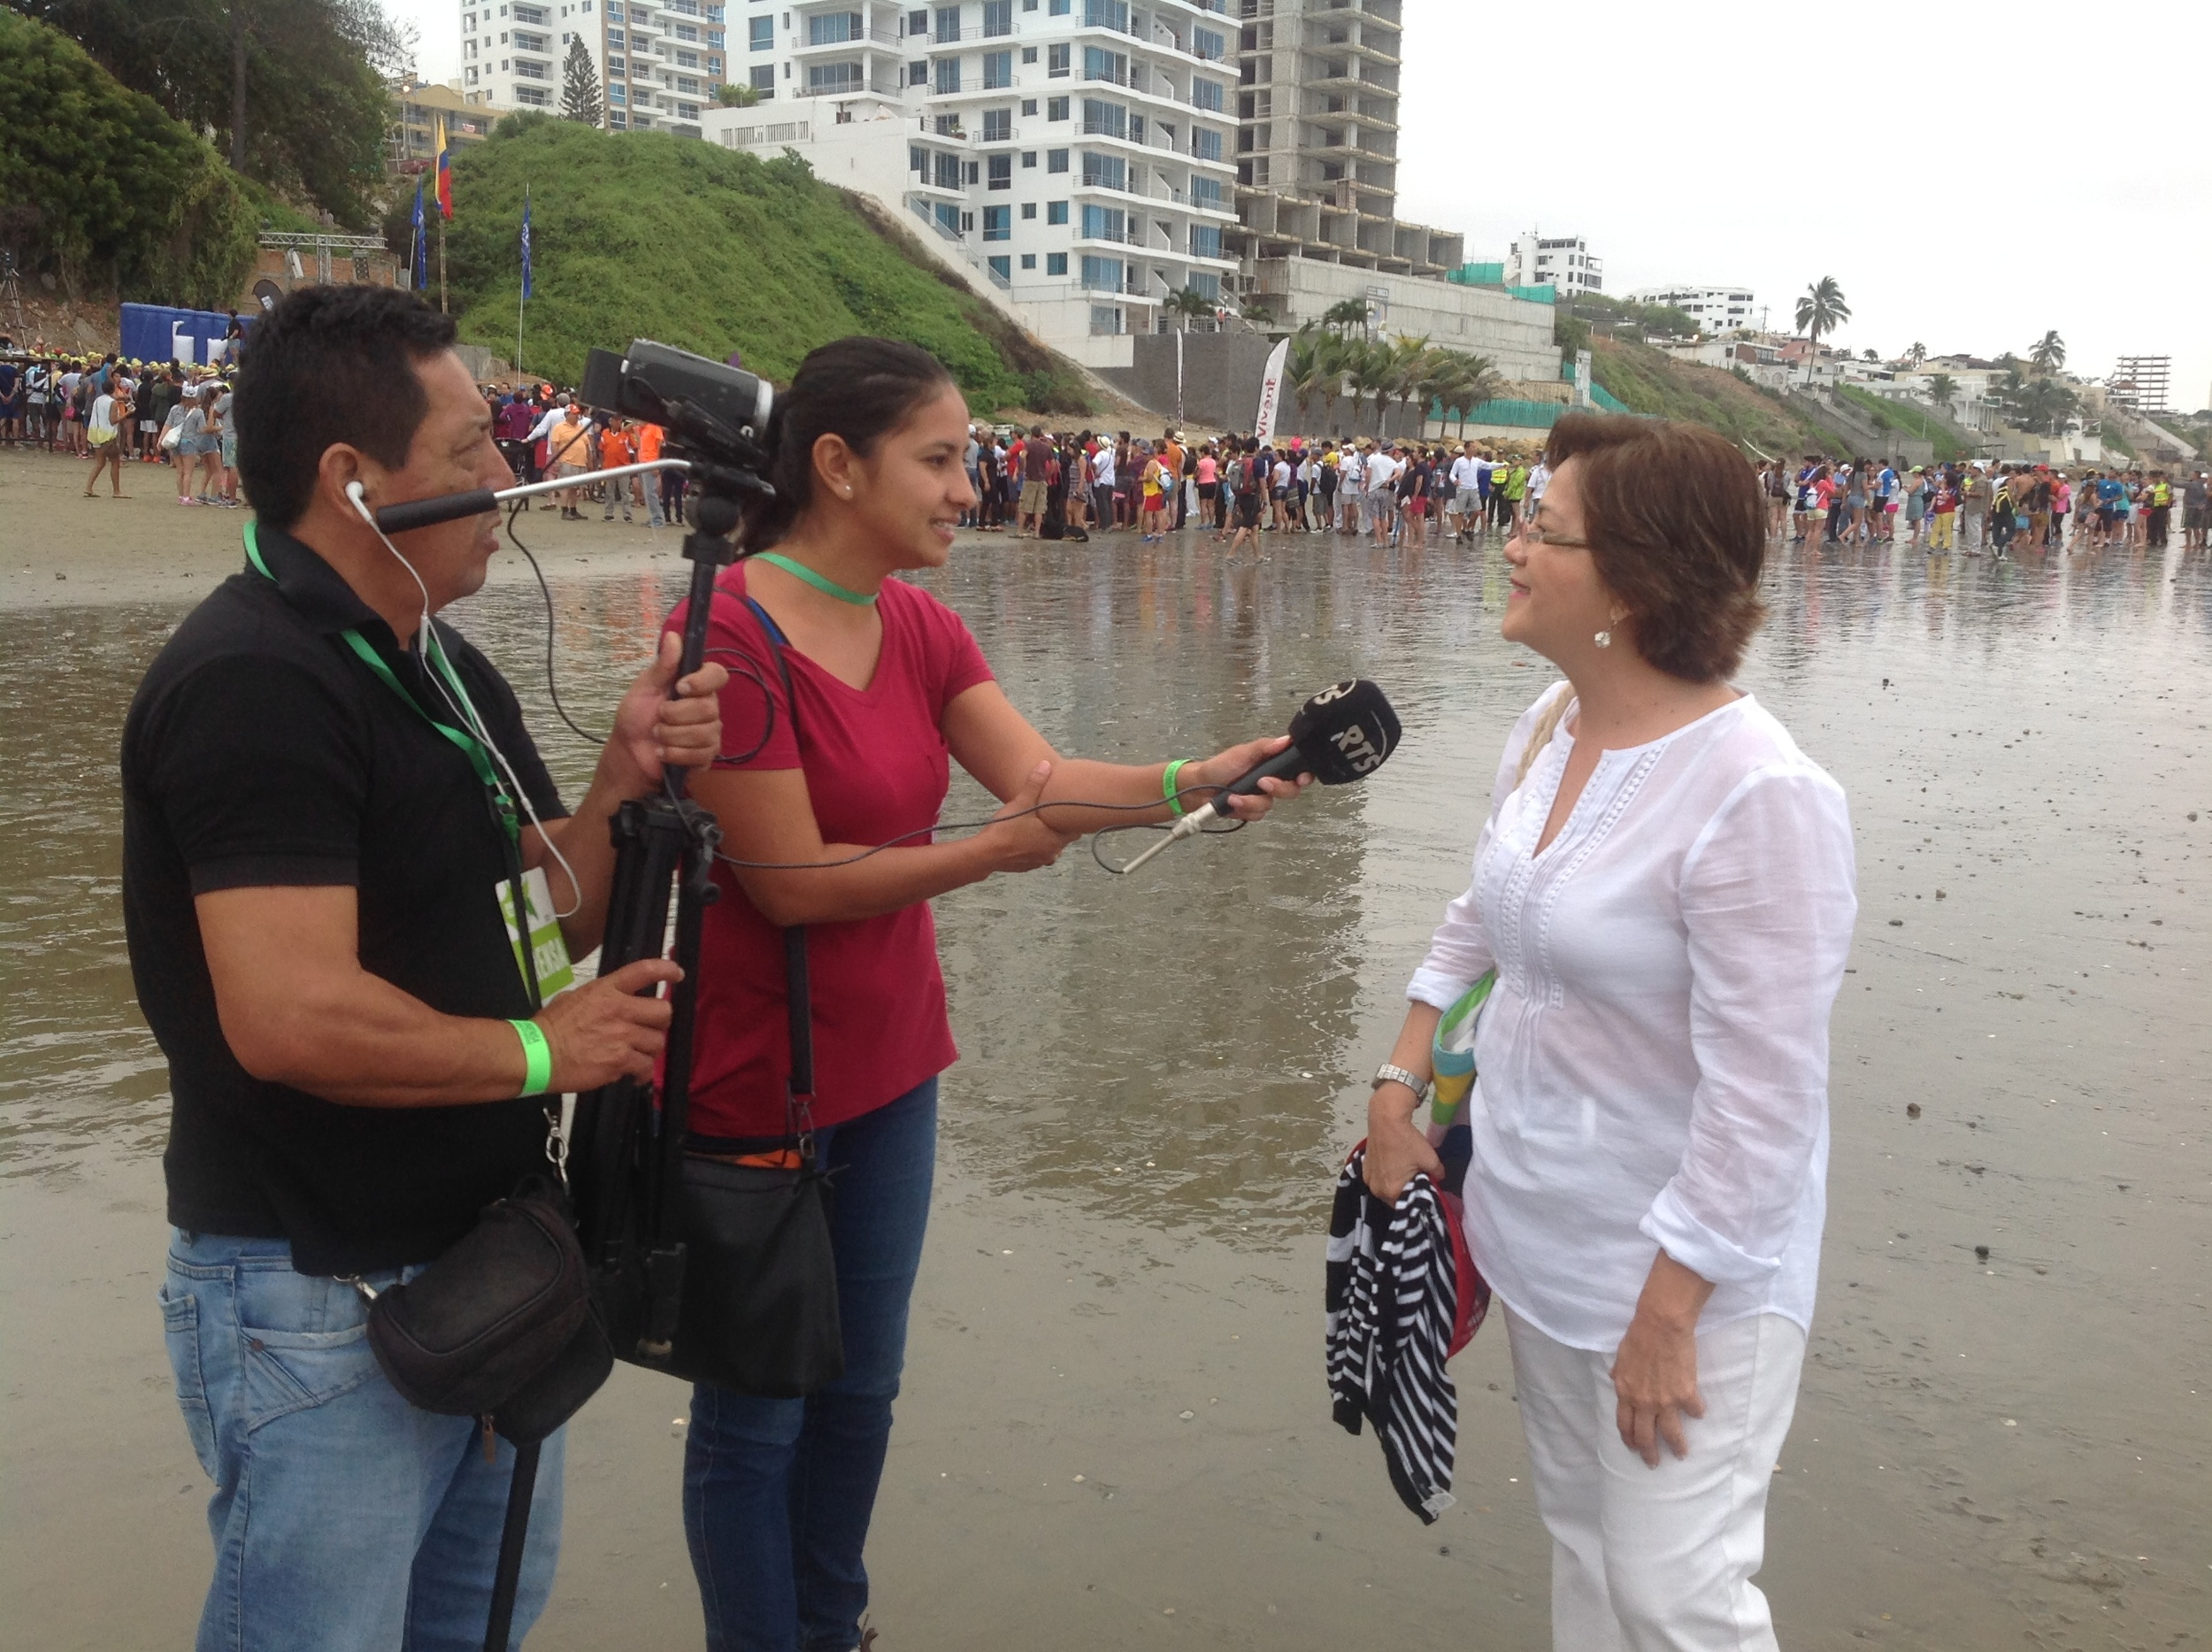 My mom 5 seconds of fame, being interviewed by the local TV :)